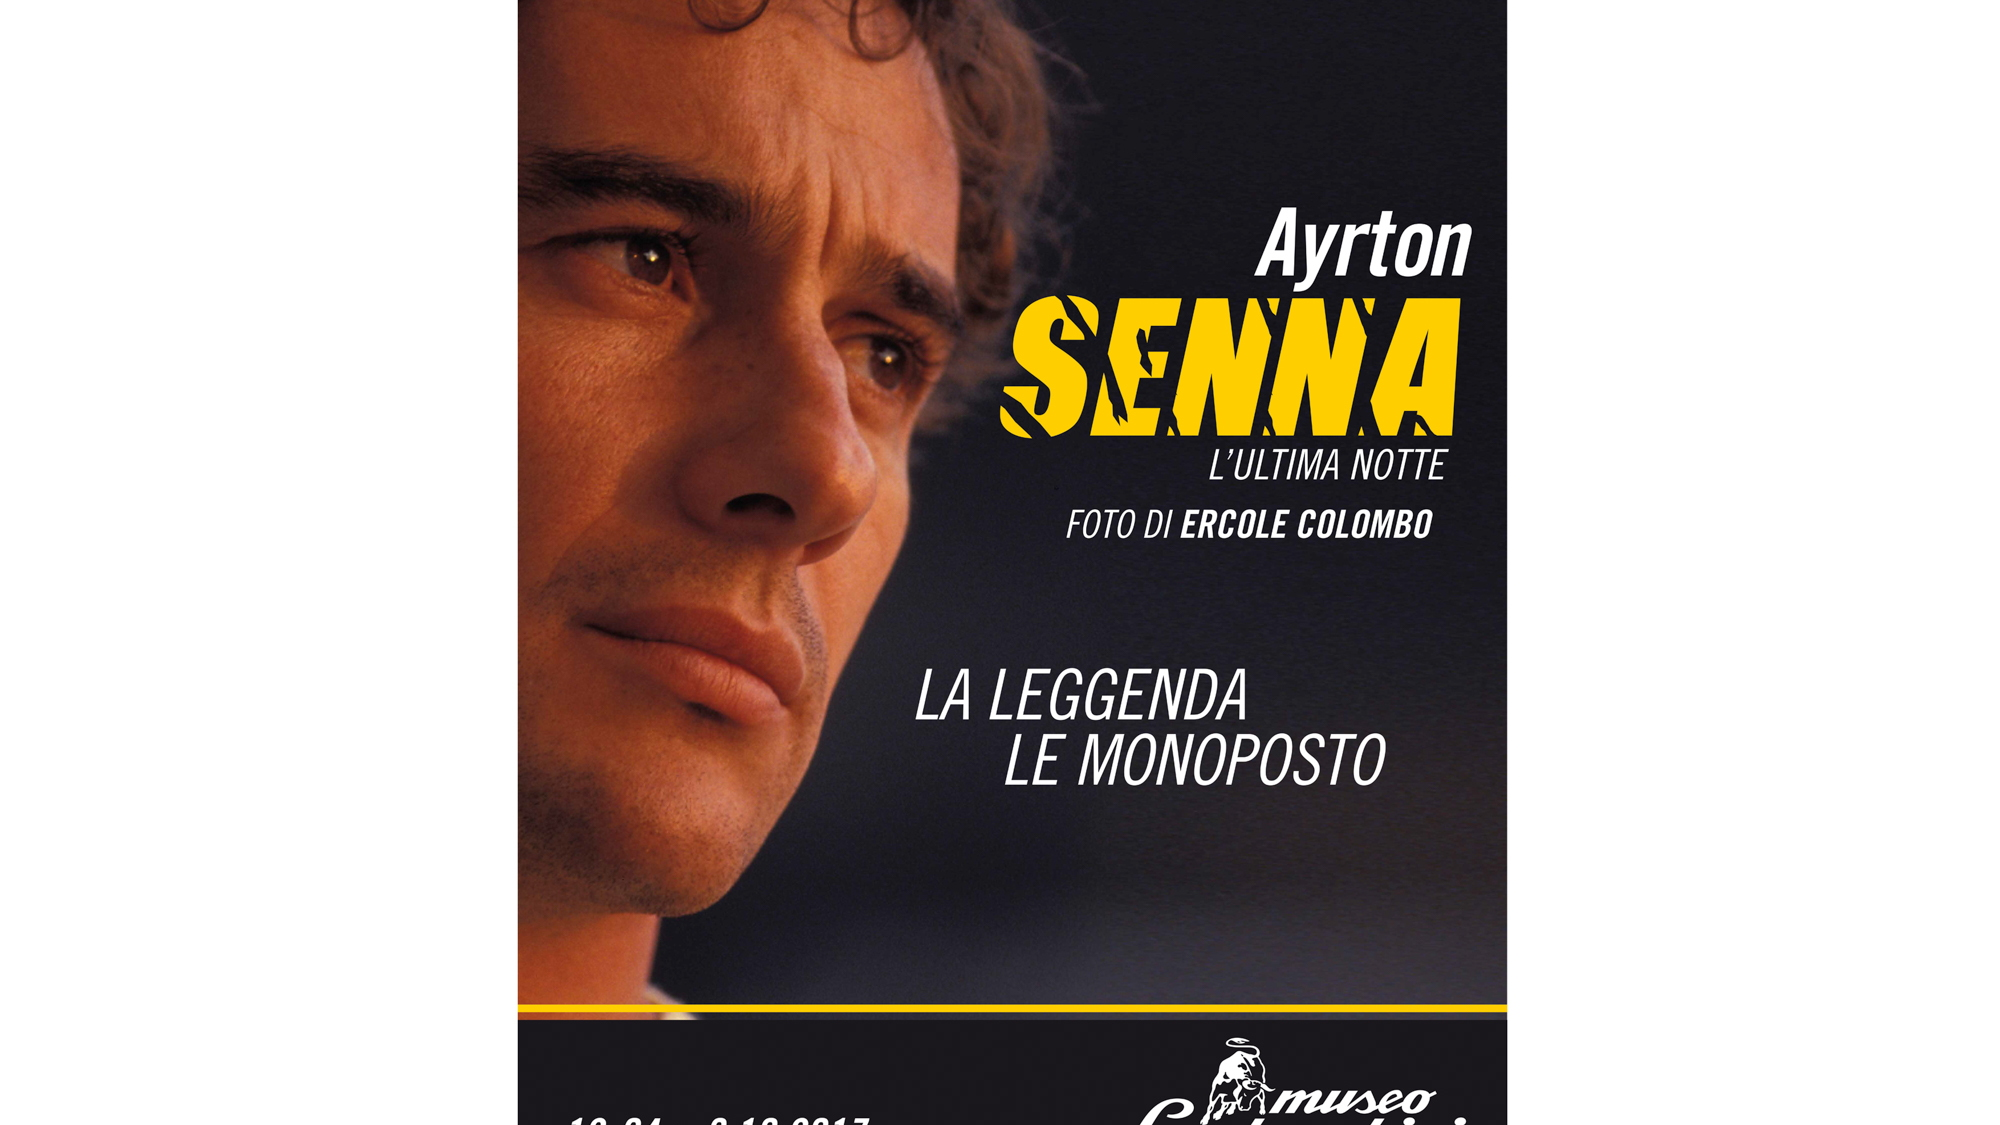 Ayrton Senna exhibit at the Lamborghini Museum